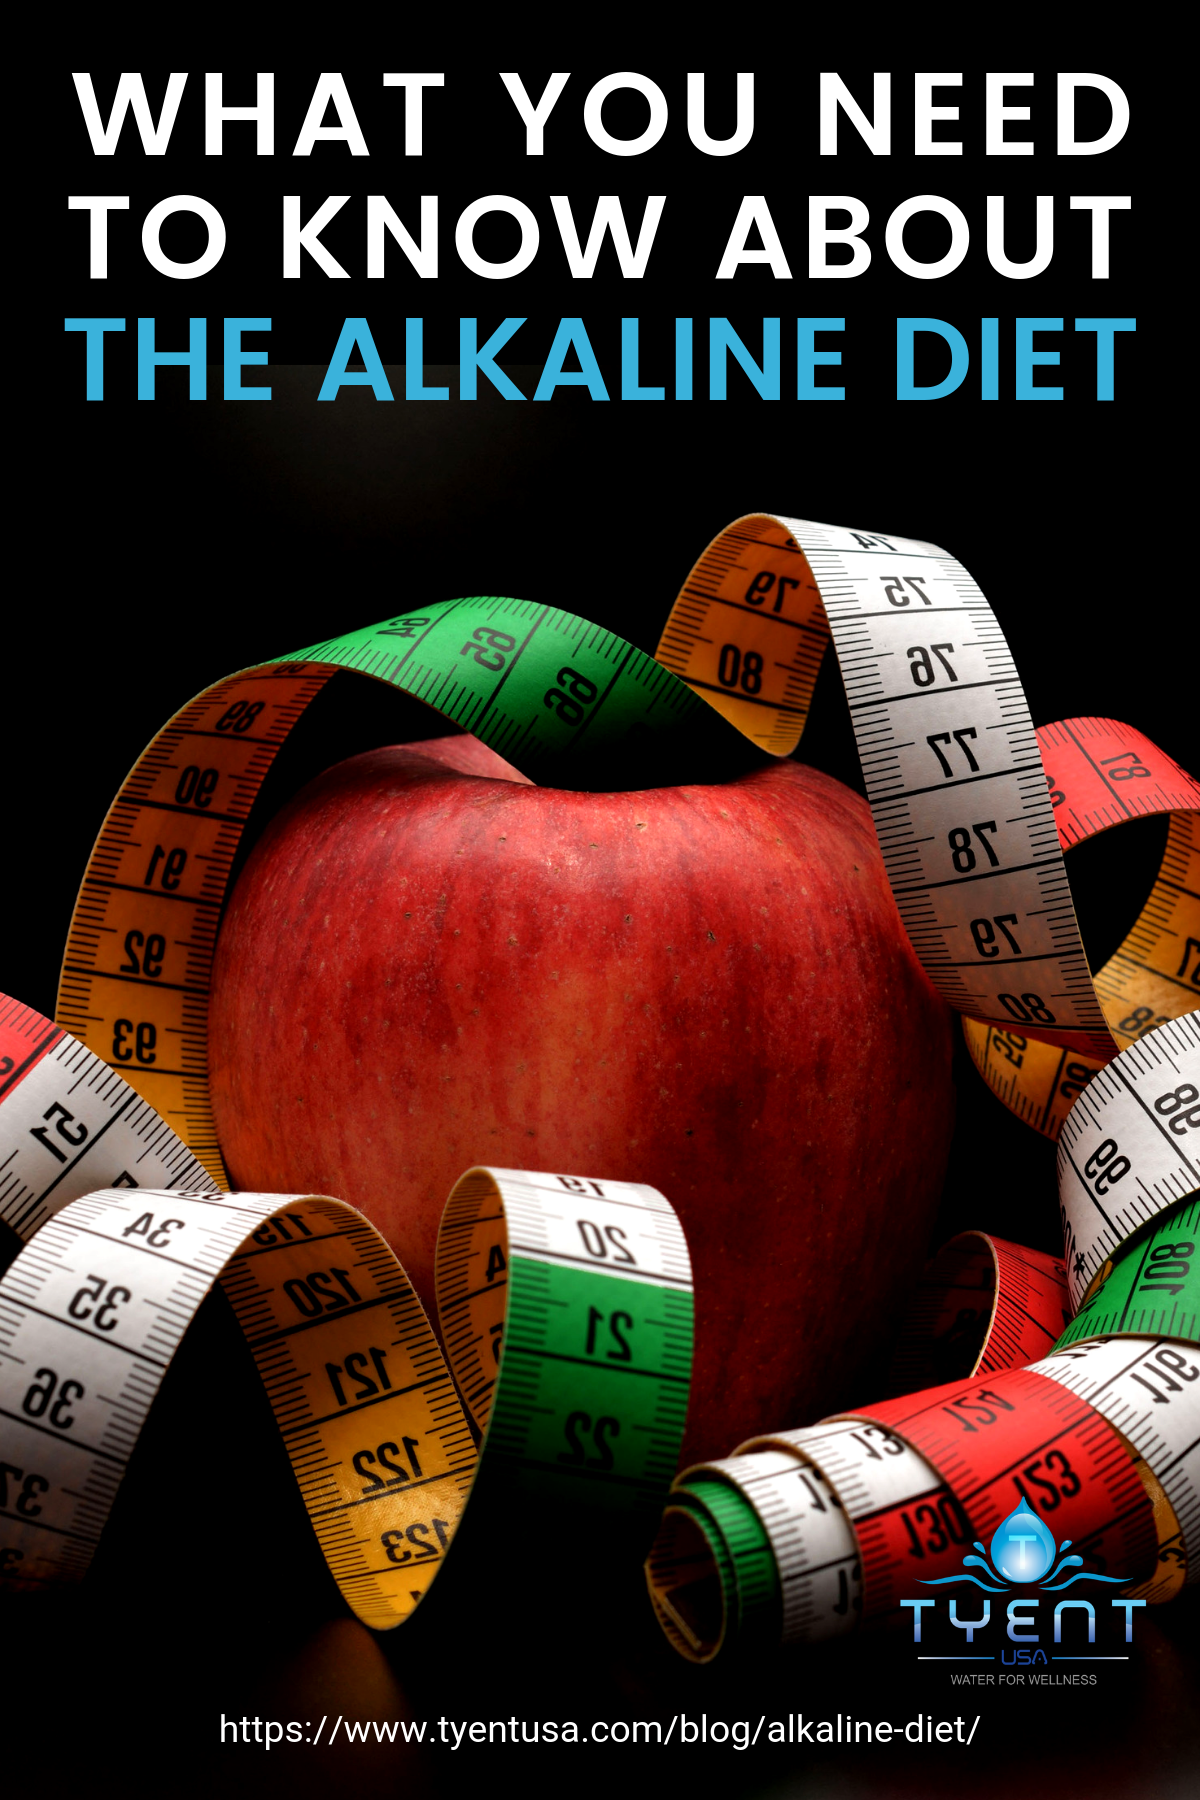 What You Need To Know About The Alkaline Diet https://www.tyentusa.com/blog/alkaline-diet/